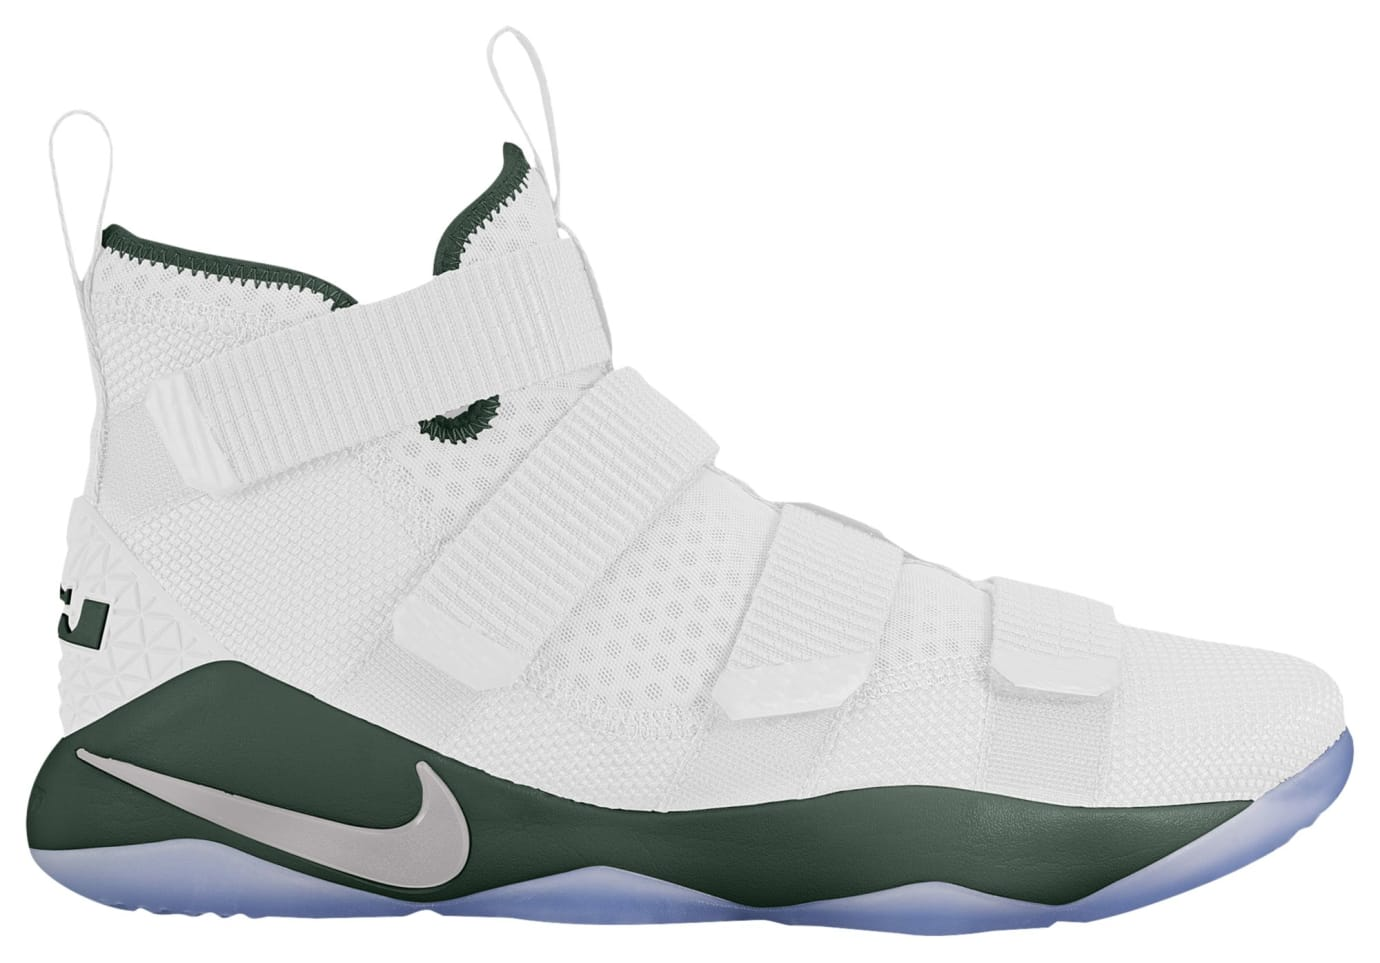 new style f5ec7 ce2b6 Nike LeBron Soldier 11 Team Bank Colorways | Sole Collector